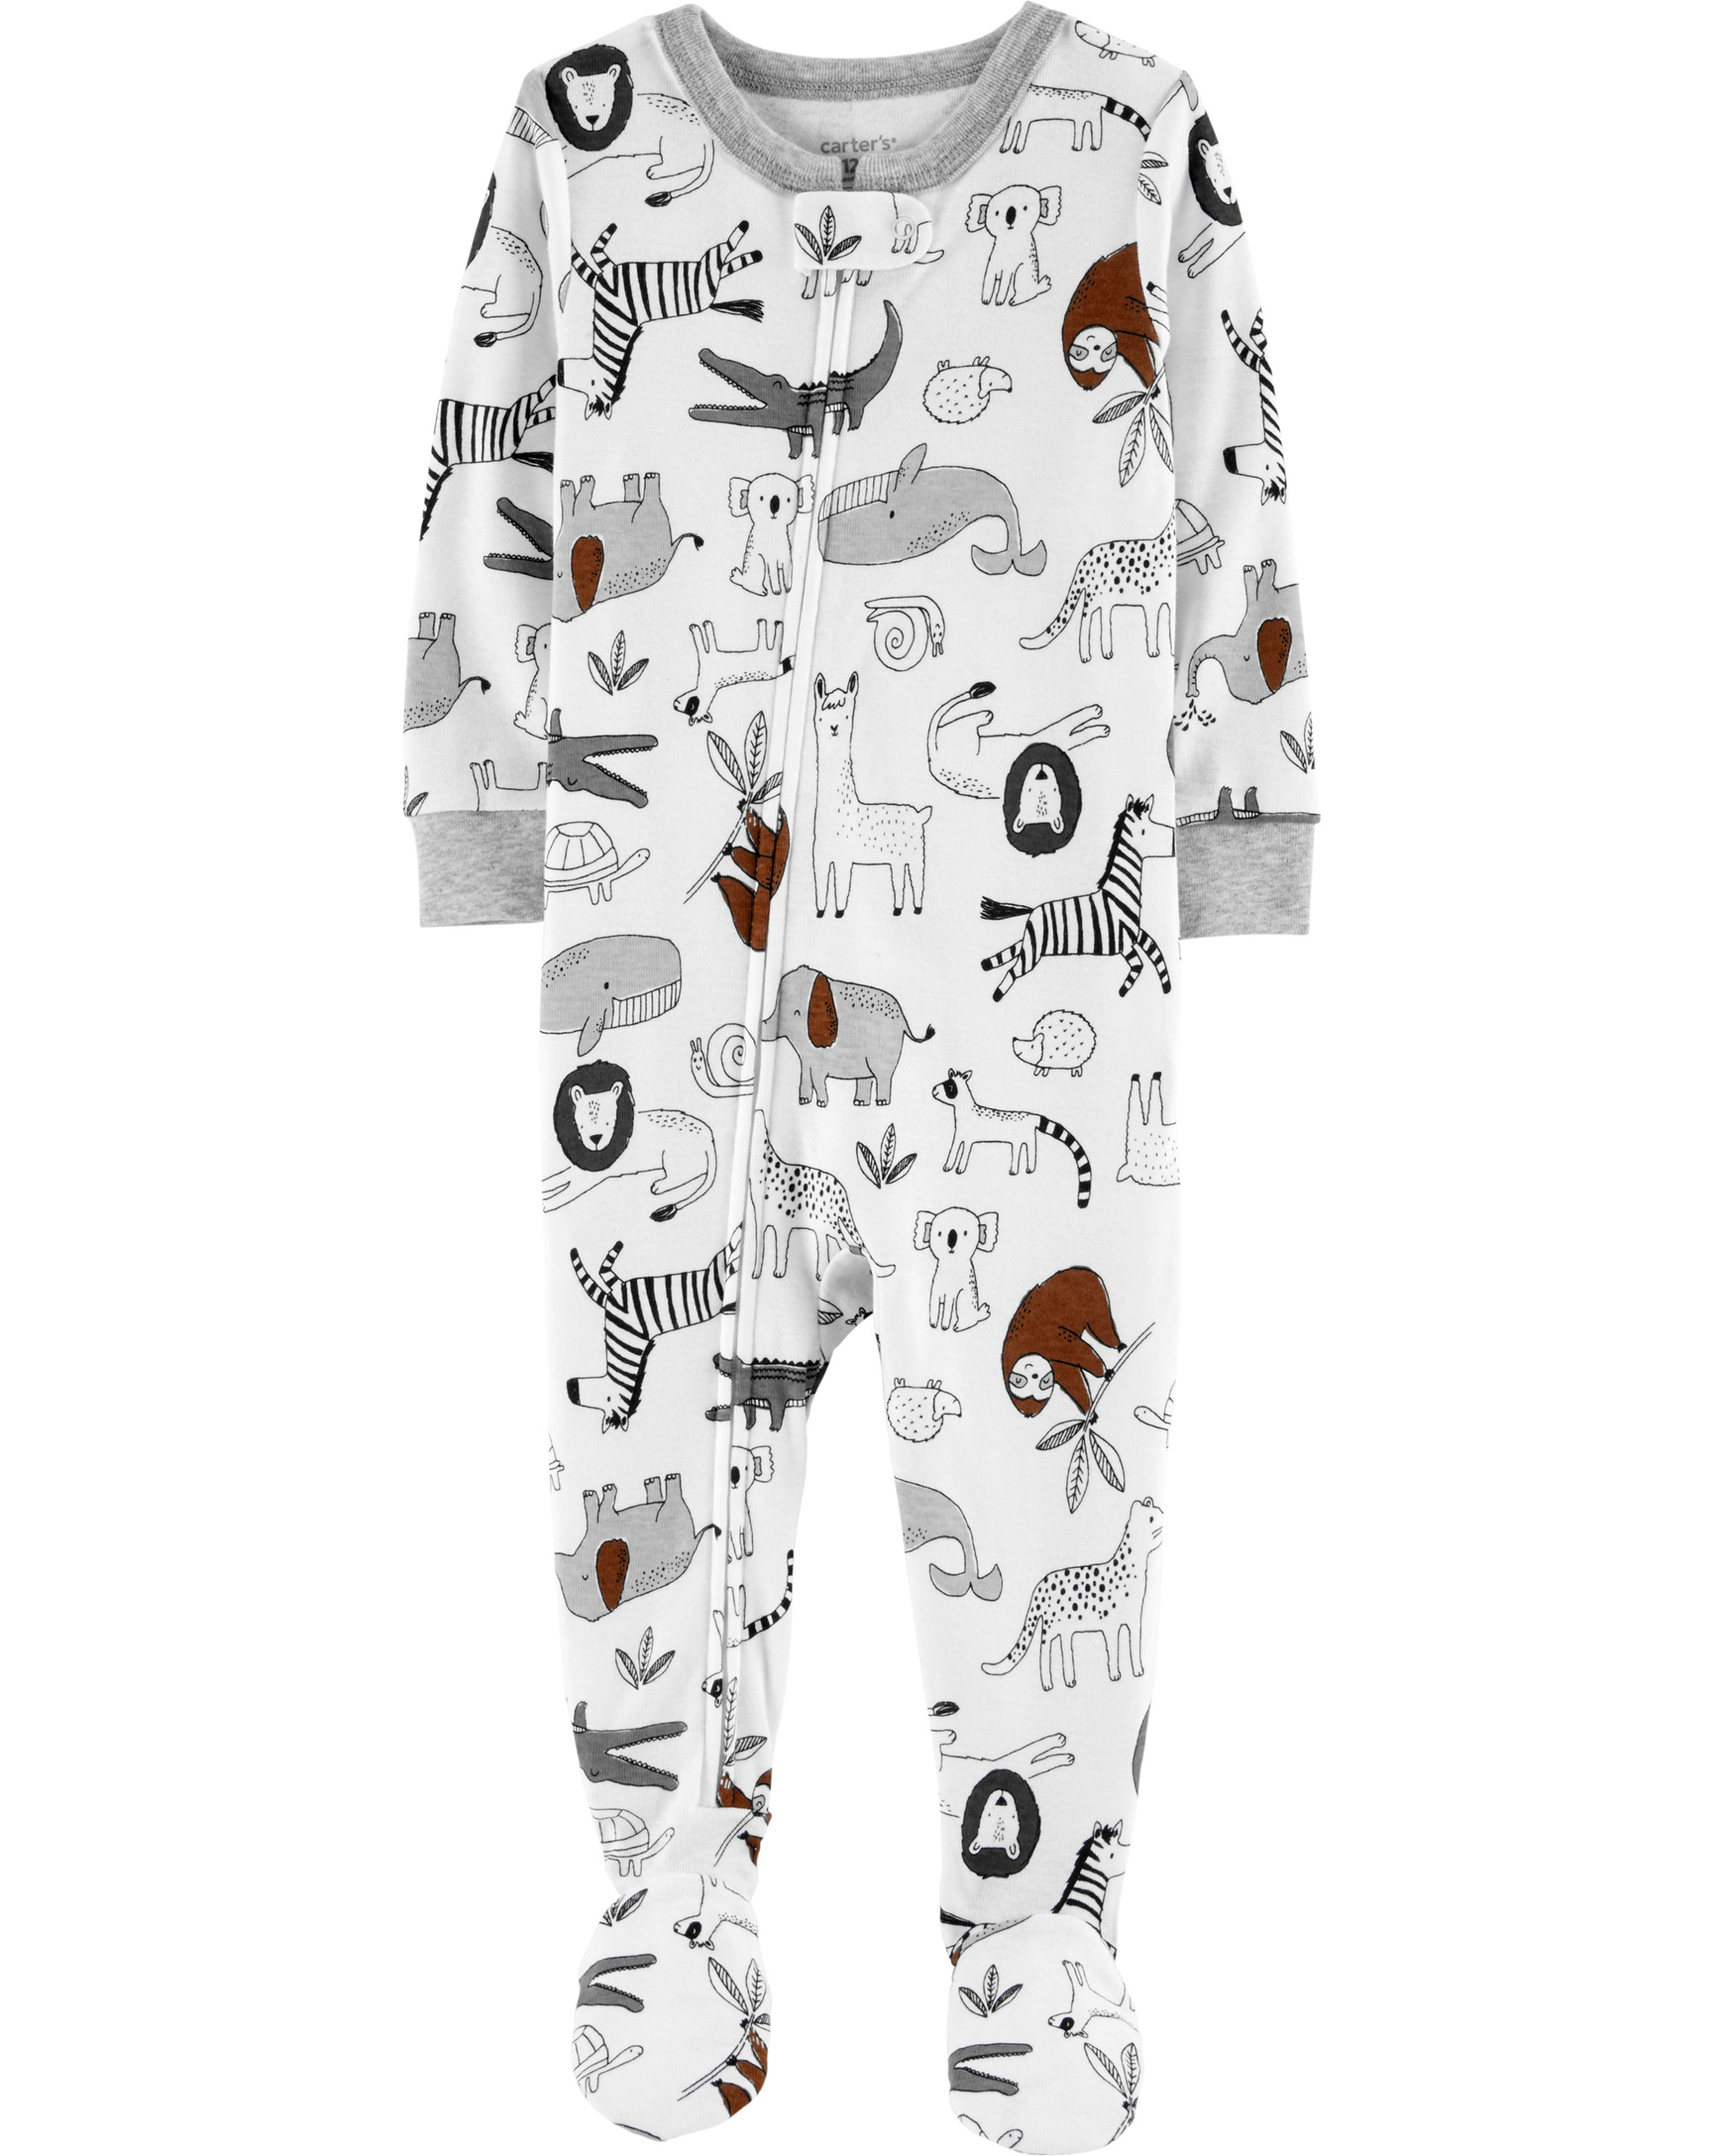 CARTERS Overal zip Animals chlapec 18m vel. 86